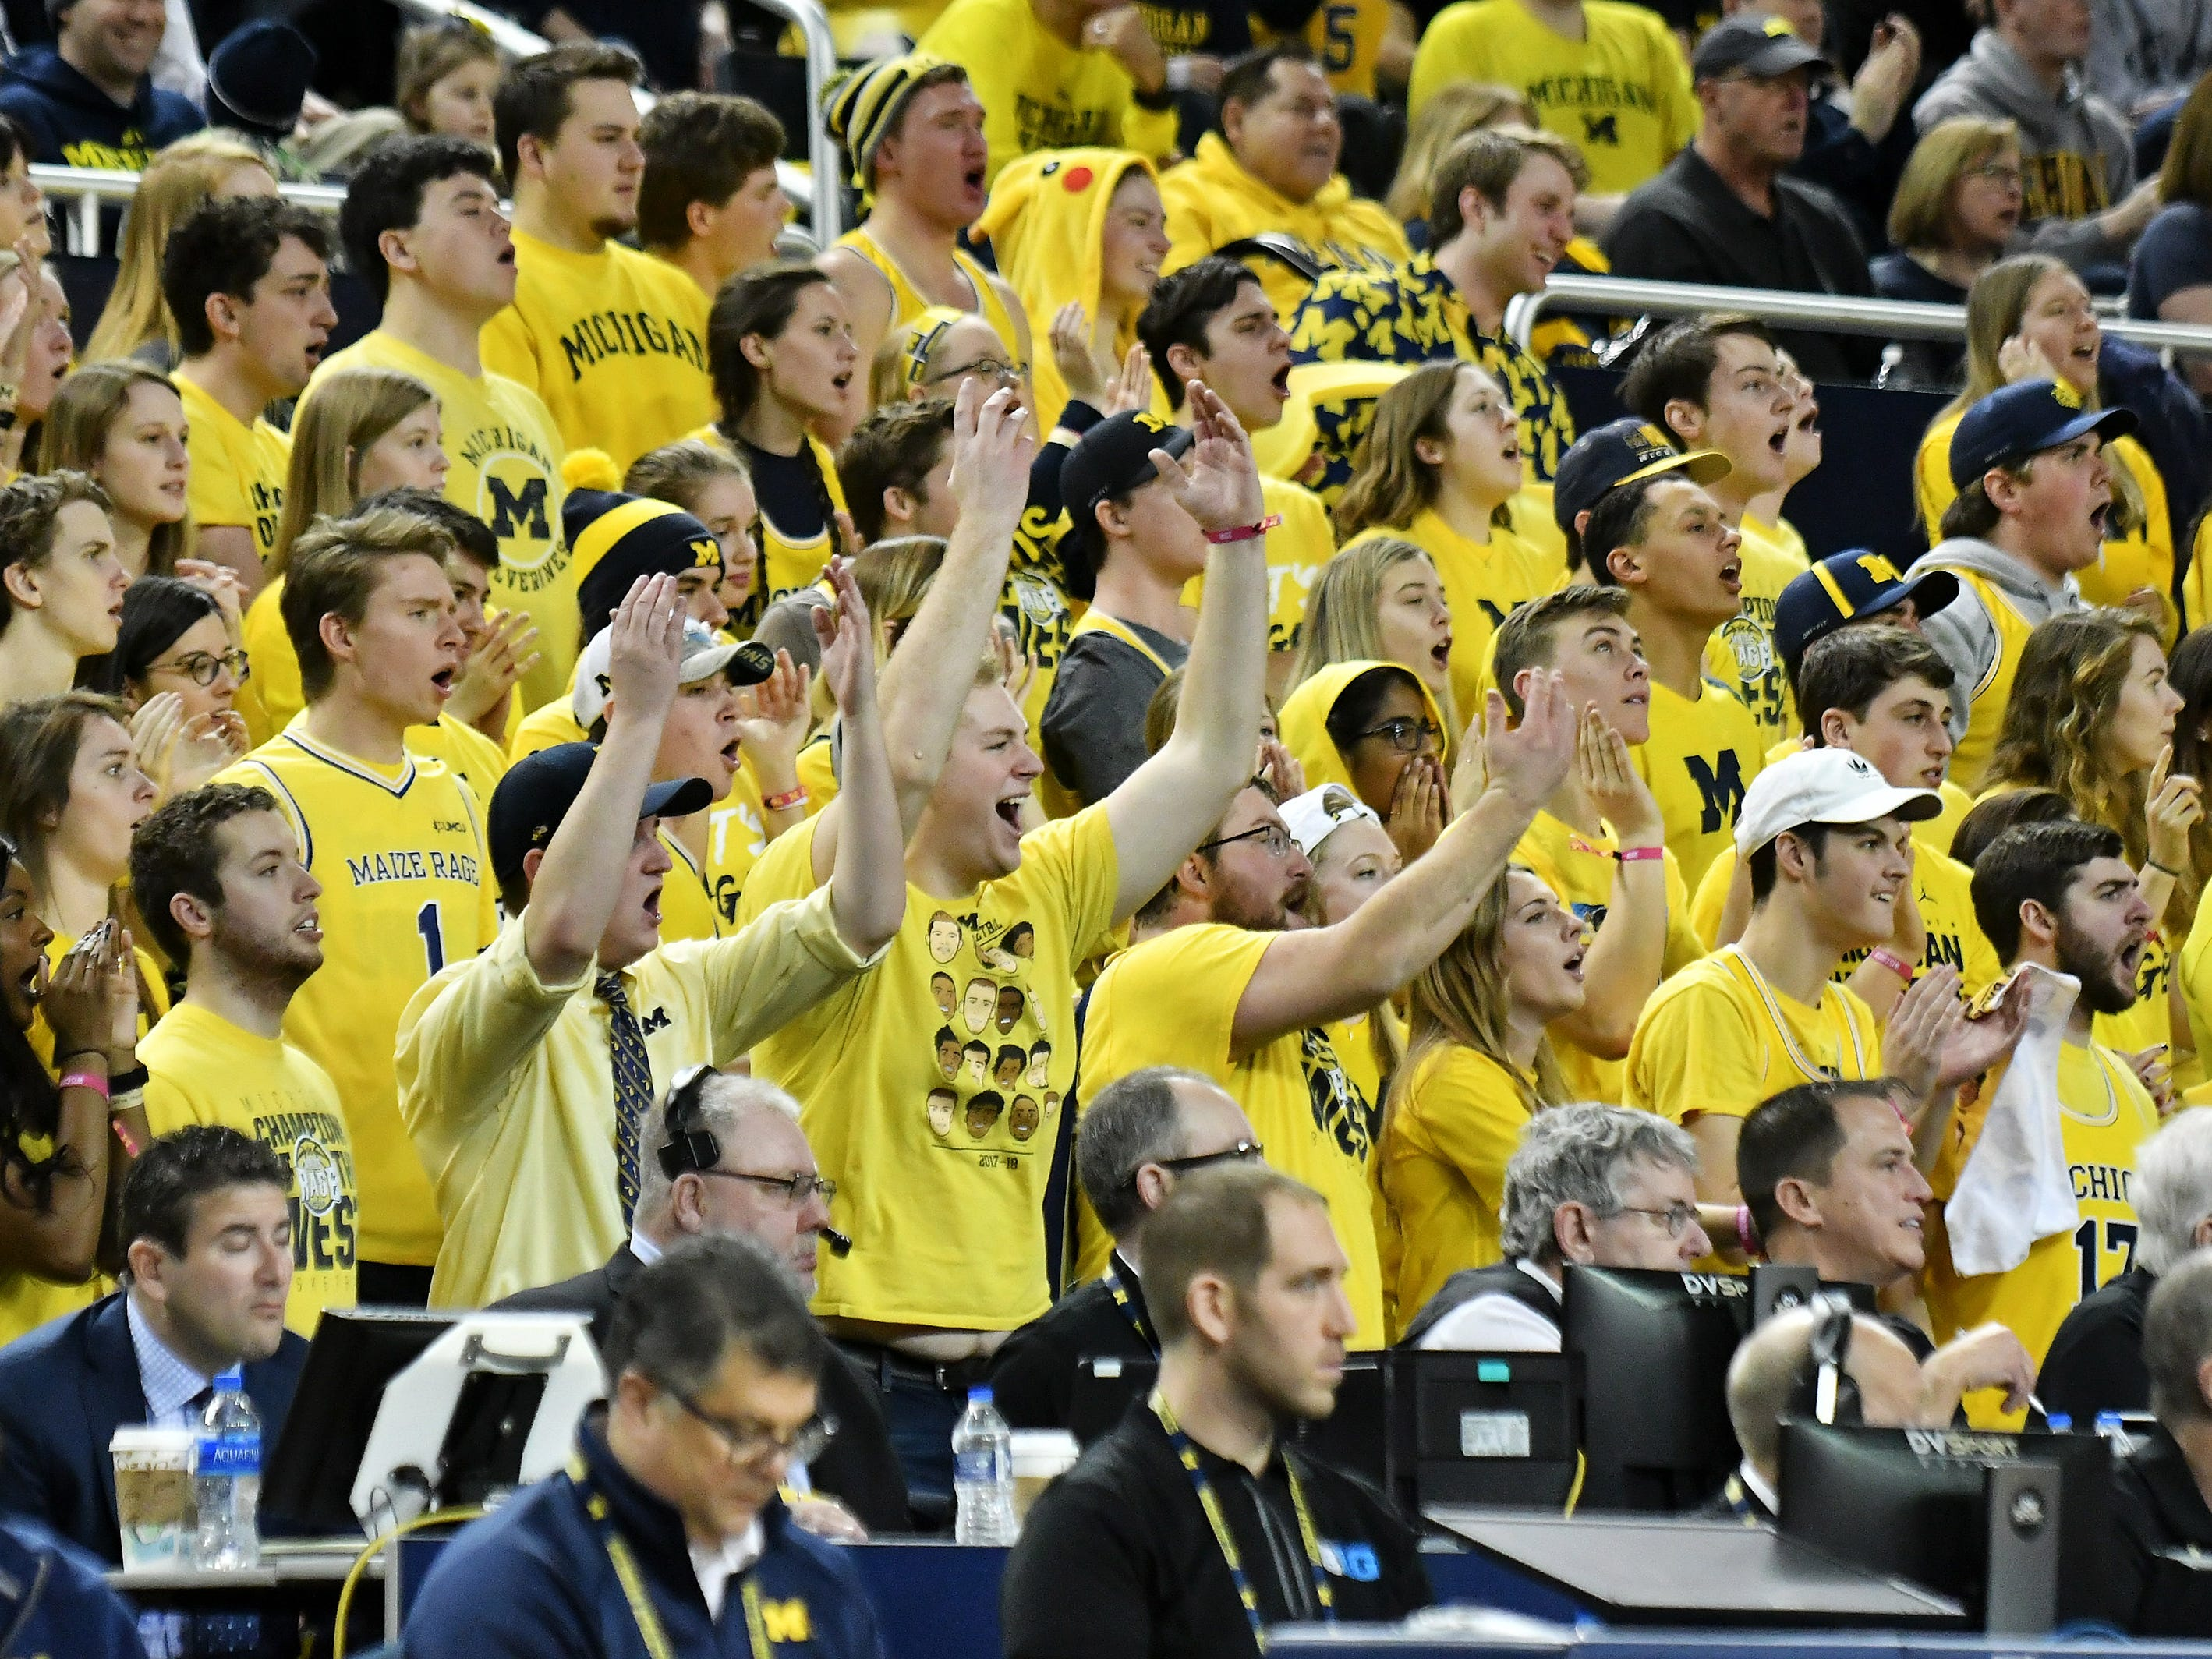 Michigan fans get excited in the second half.